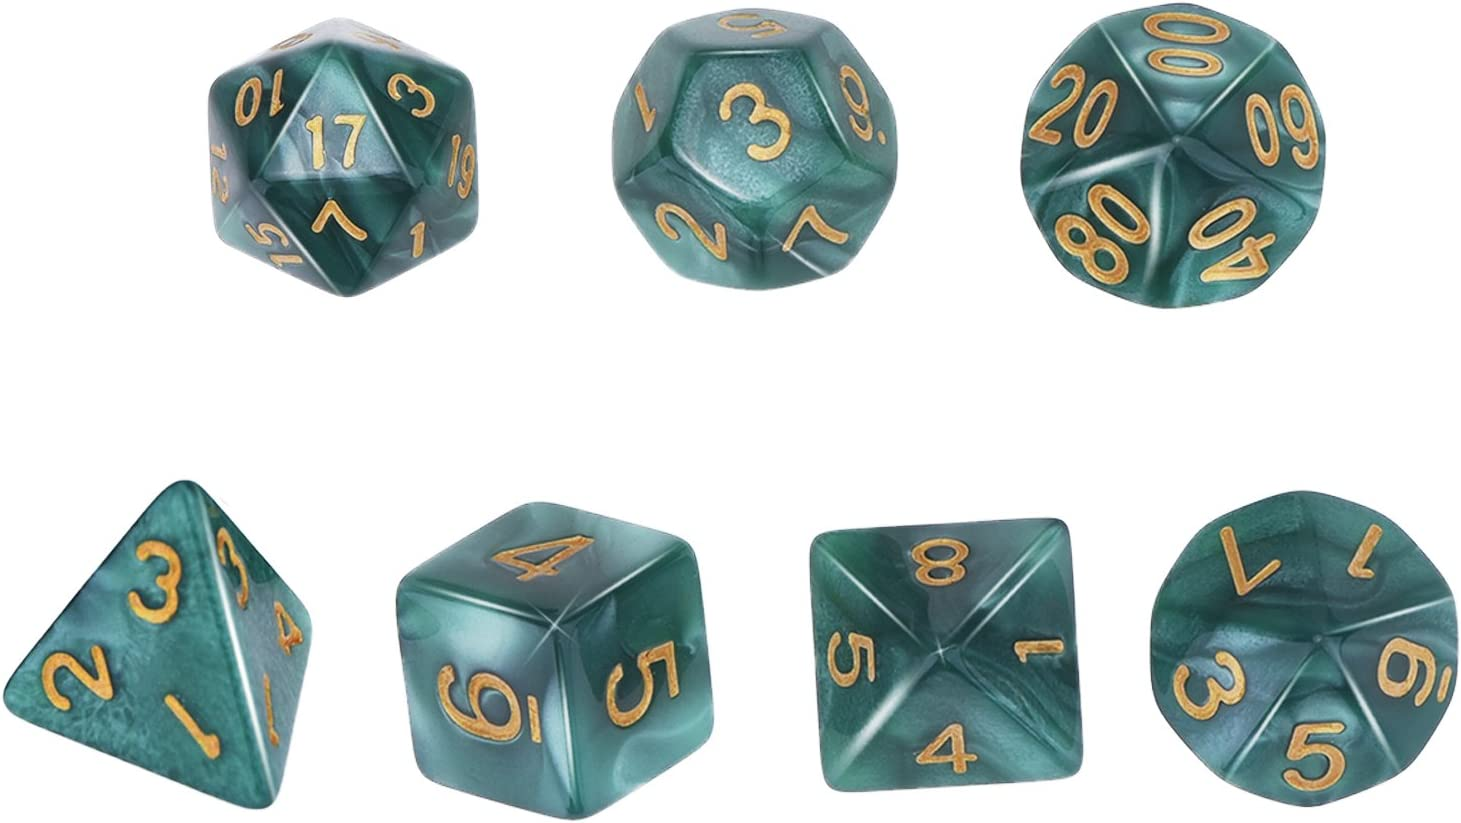 Green eBoot Polyhedral 7-Die Dice Set for Dungeons and Dragons with Black Pouch